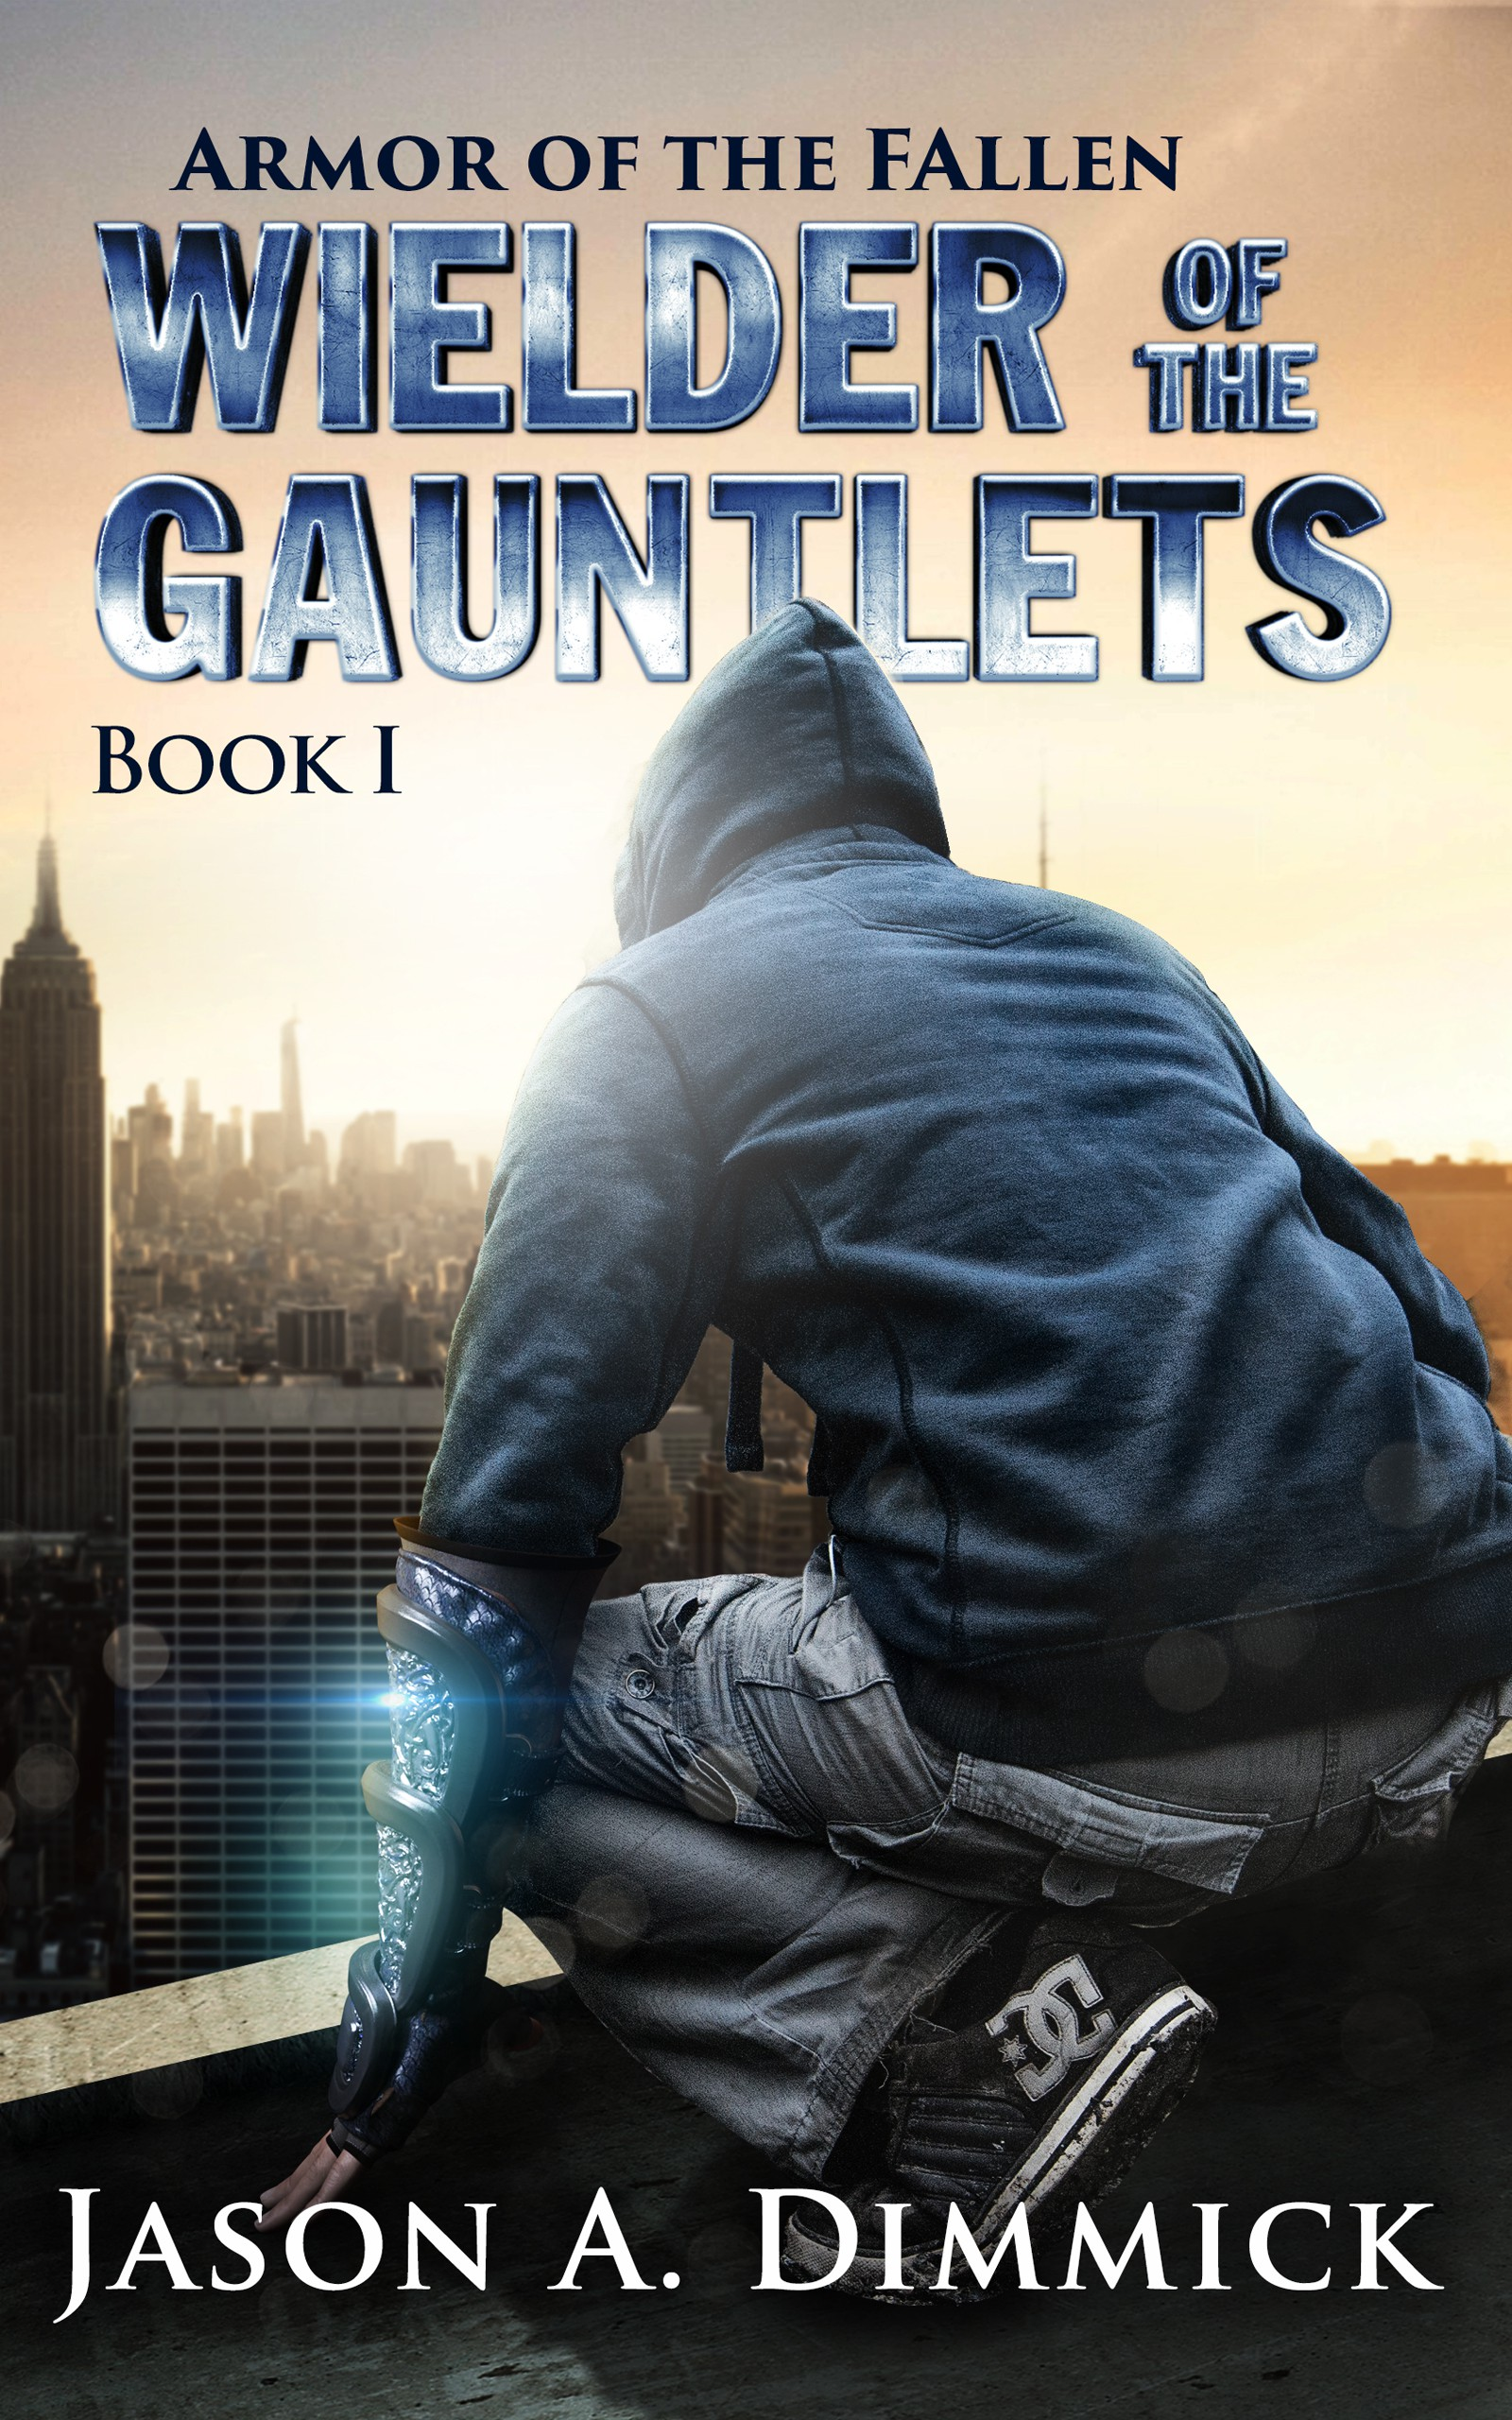 First time author needs a cover to grab attention for his christian young adult novel